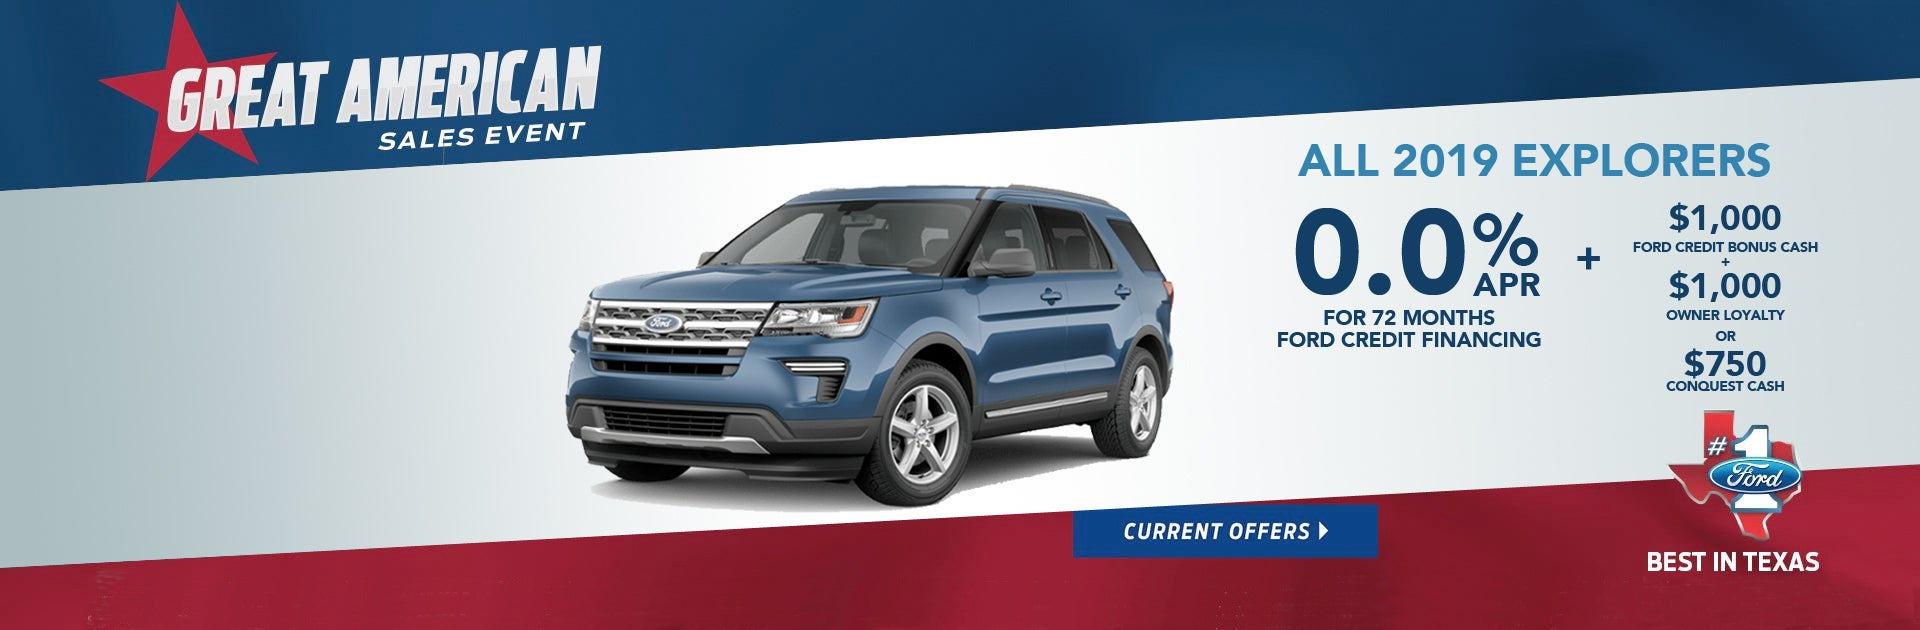 Ford Dealership Houston >> Car Dealer Ford Dealership In Houston Tx Russell Smith Ford